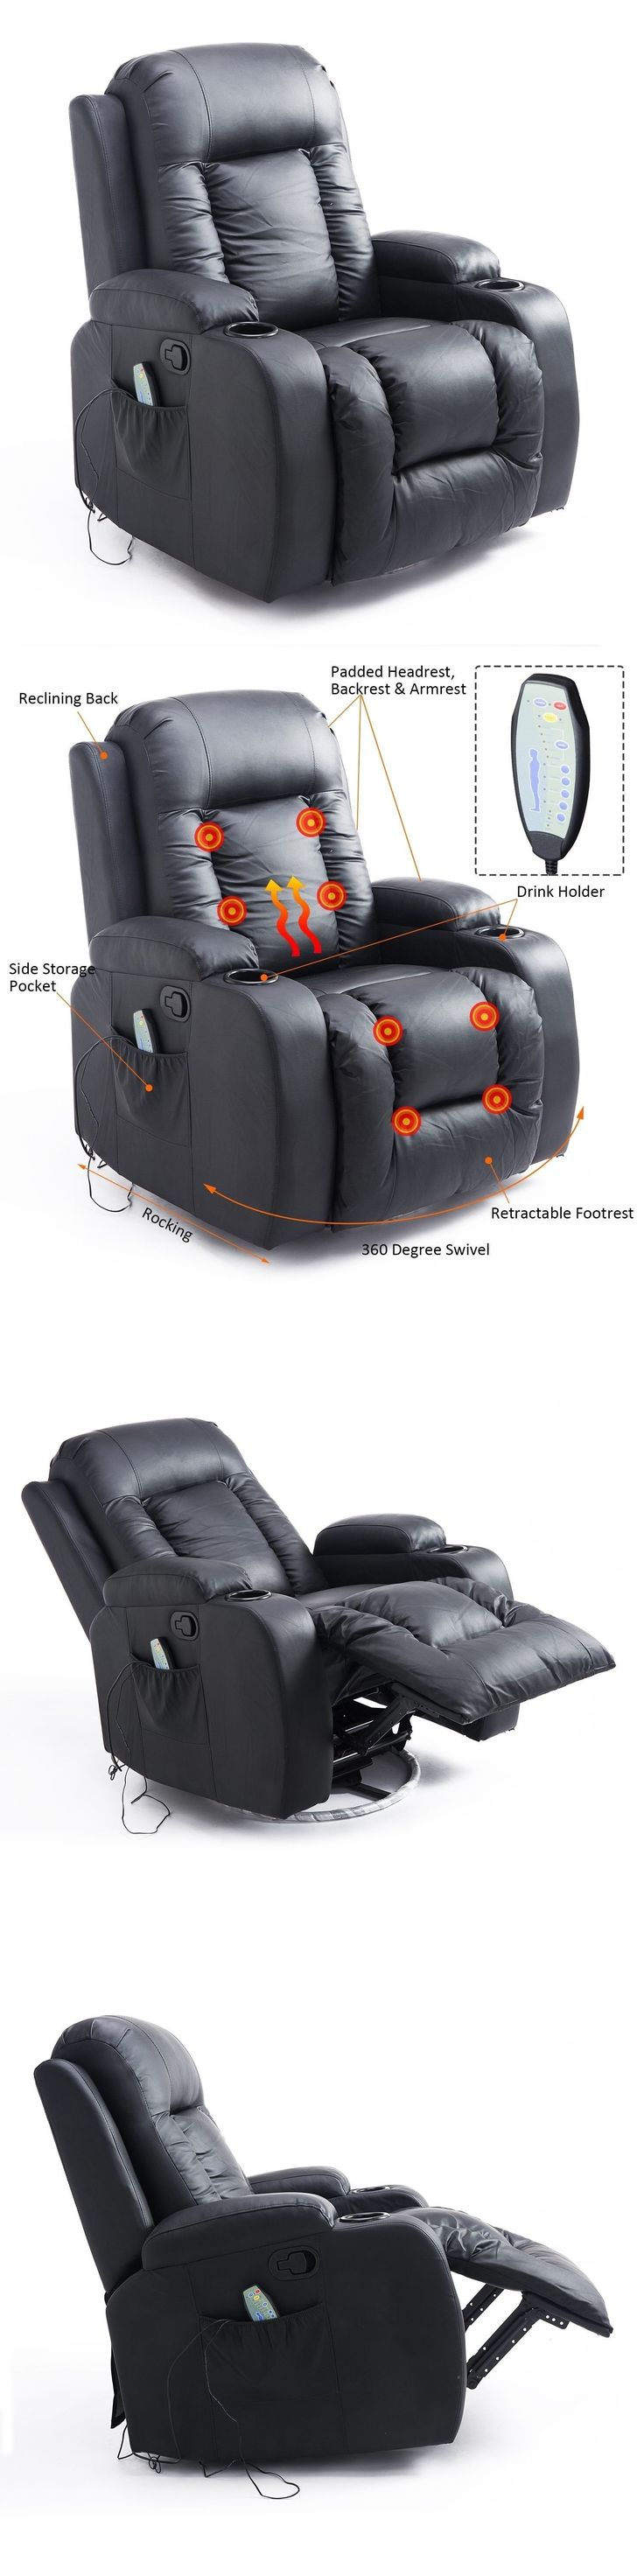 576 best Electric Massage Chairs images on Pinterest